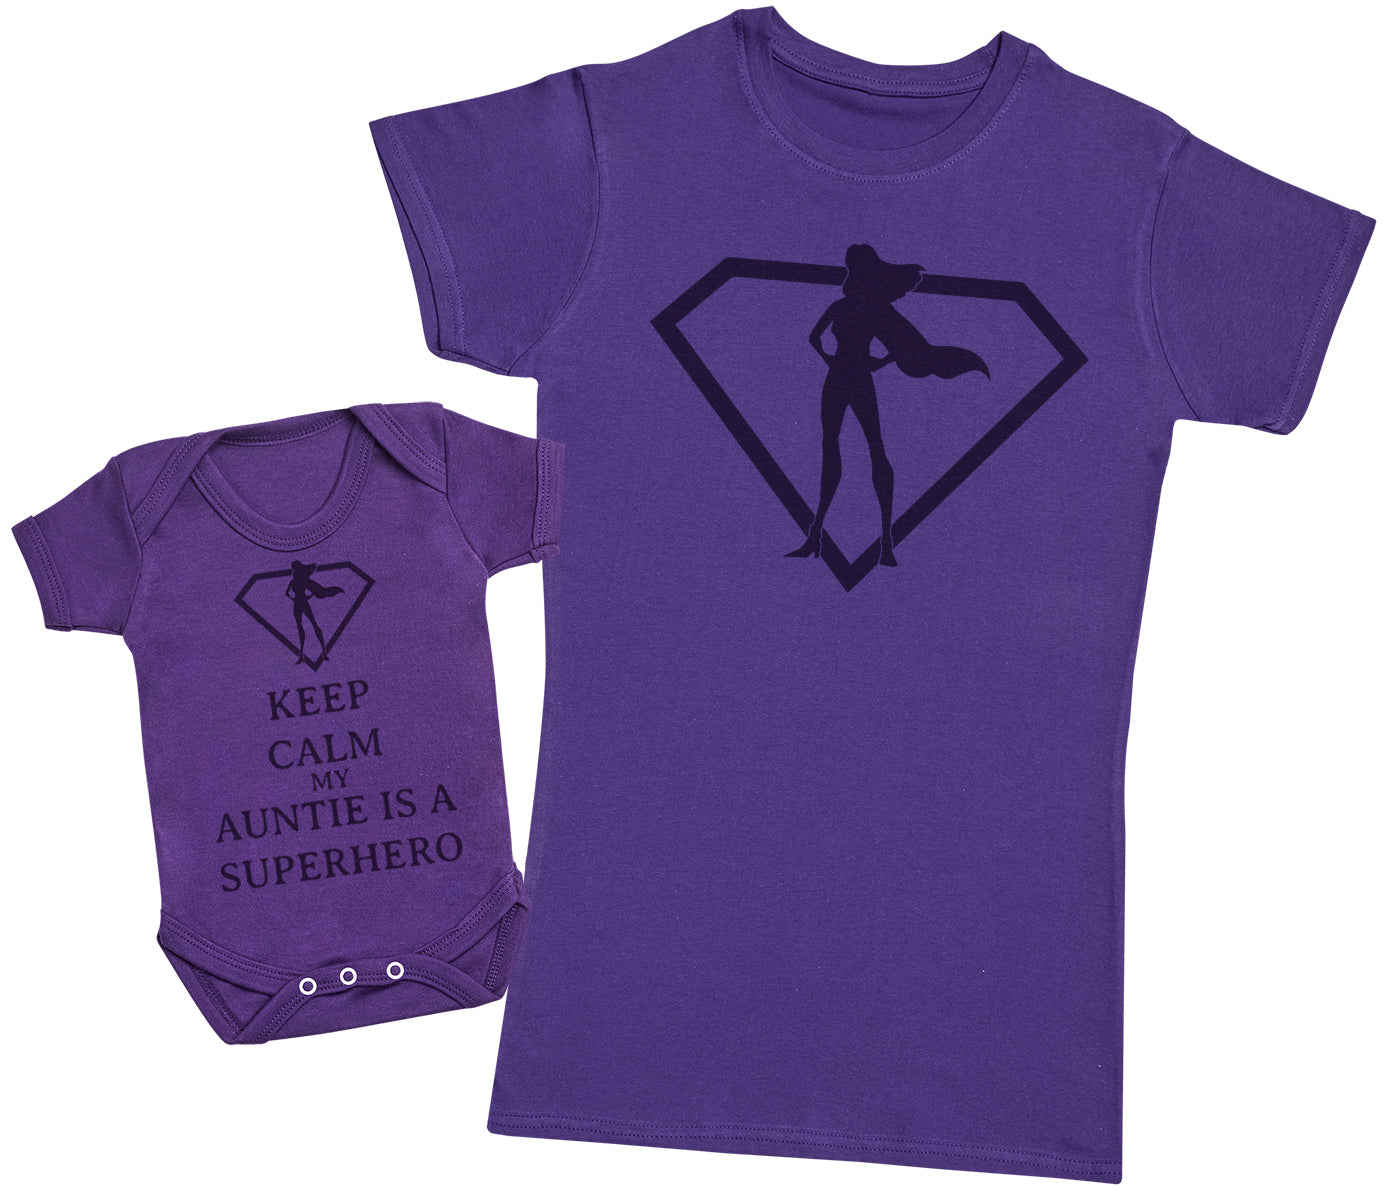 Keep Calm My Auntie Is A Superhero - Matching Mother Baby Gift Set - Womens  T Shirt   Baby Bodysuit - Purple - Small   Newborn 57a6ae045